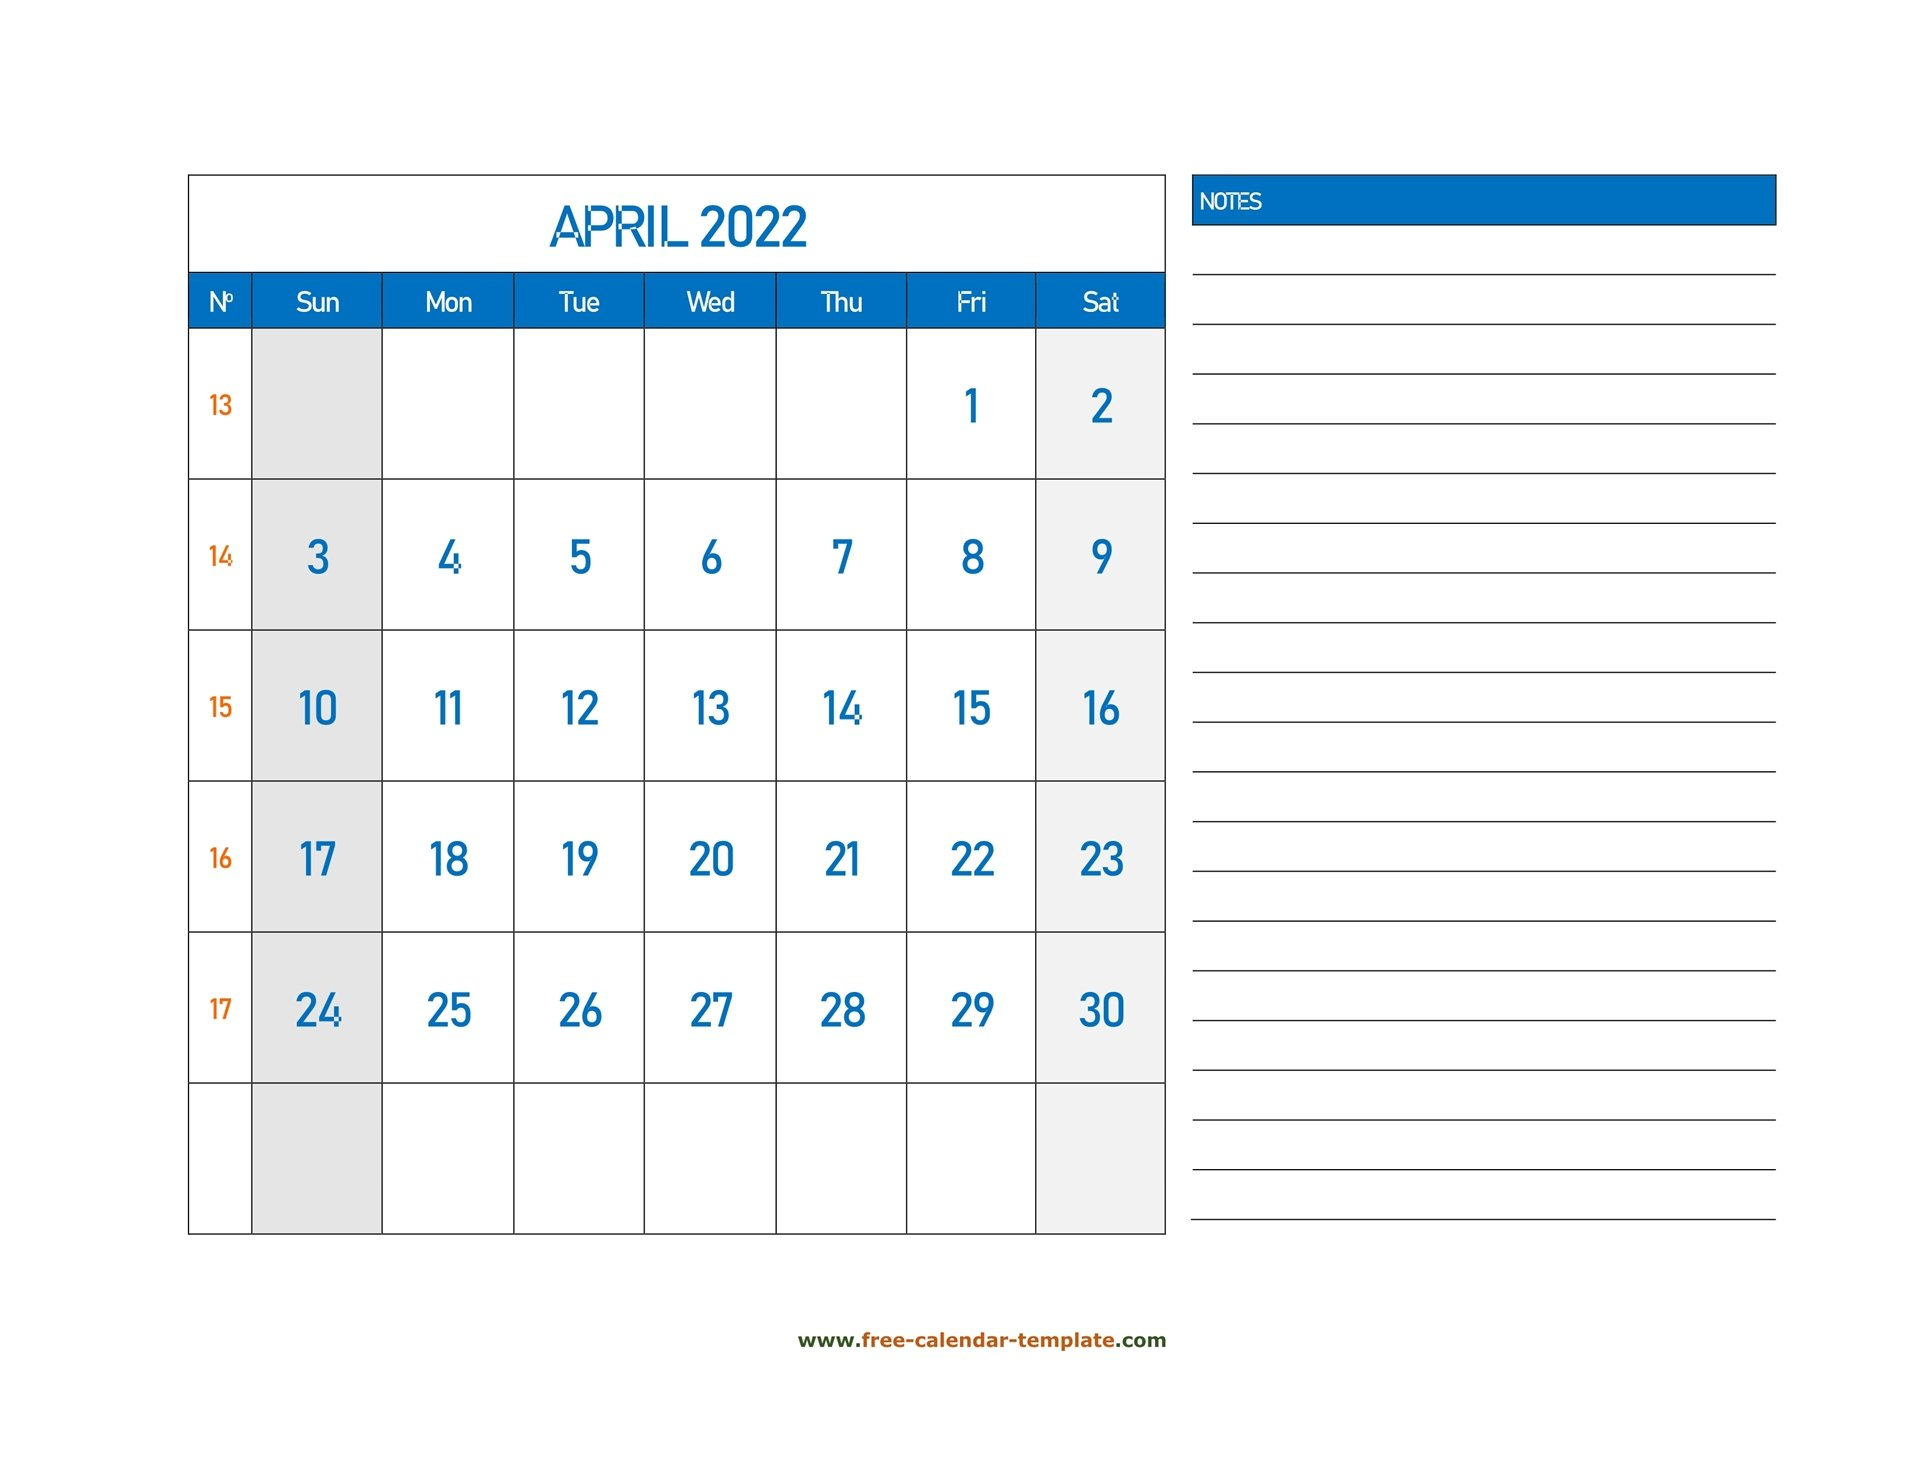 April Calendar 2022 Grid Lines For Holidays And Notes with regard to April 2022 Calendar Printable